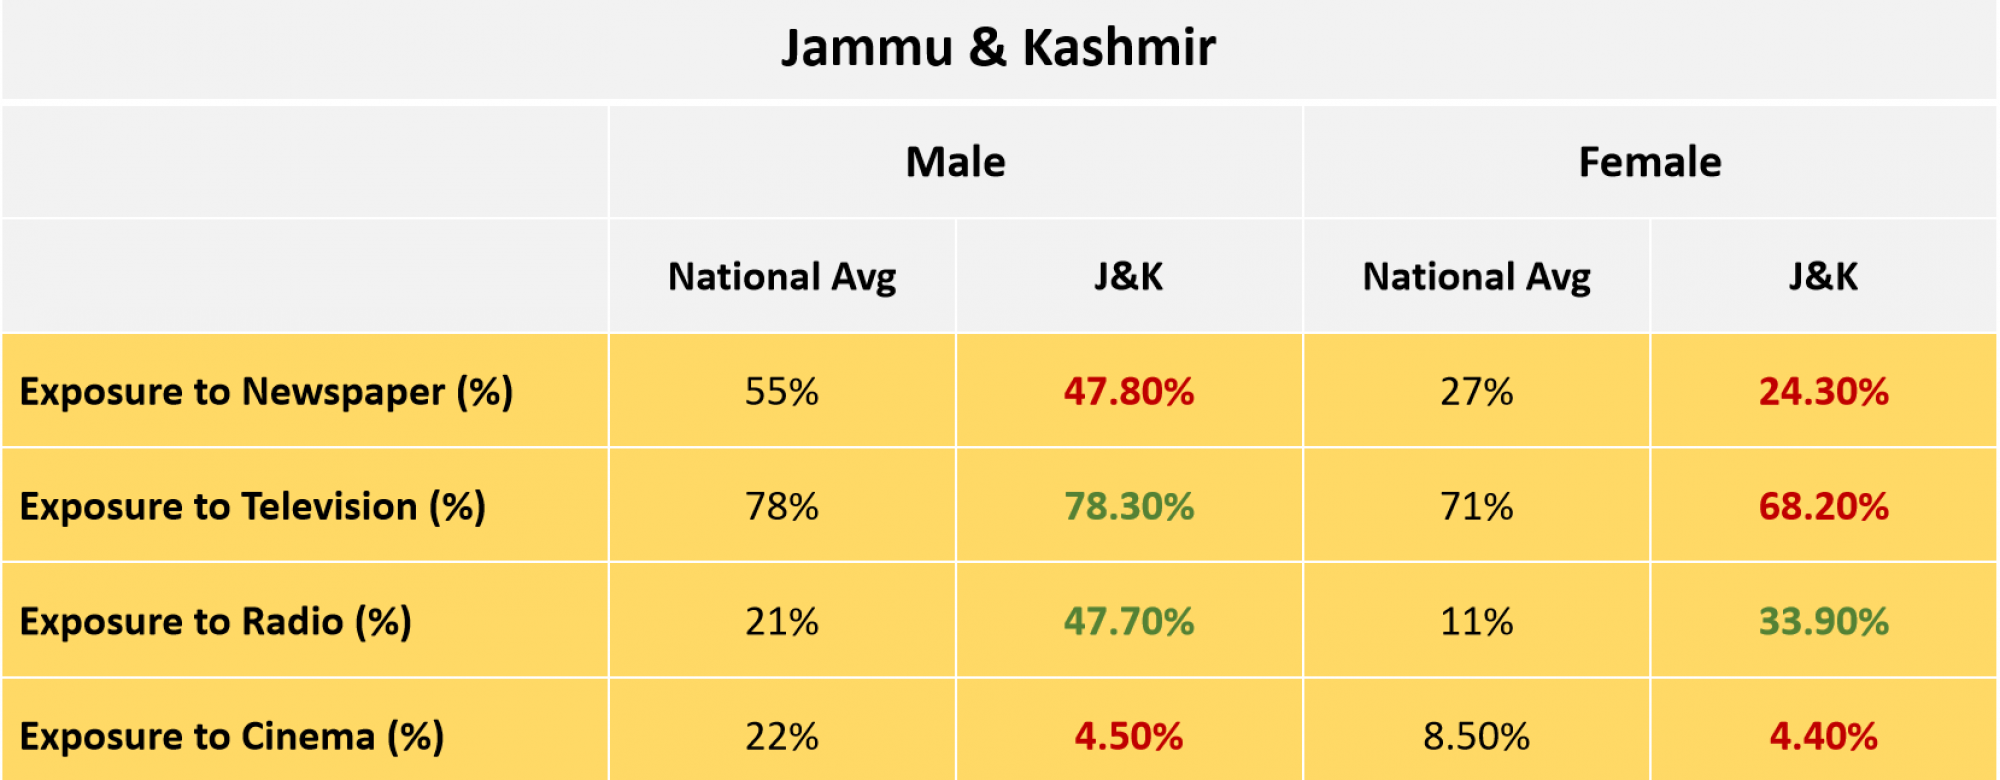 Jammu & Kashmir media exposure